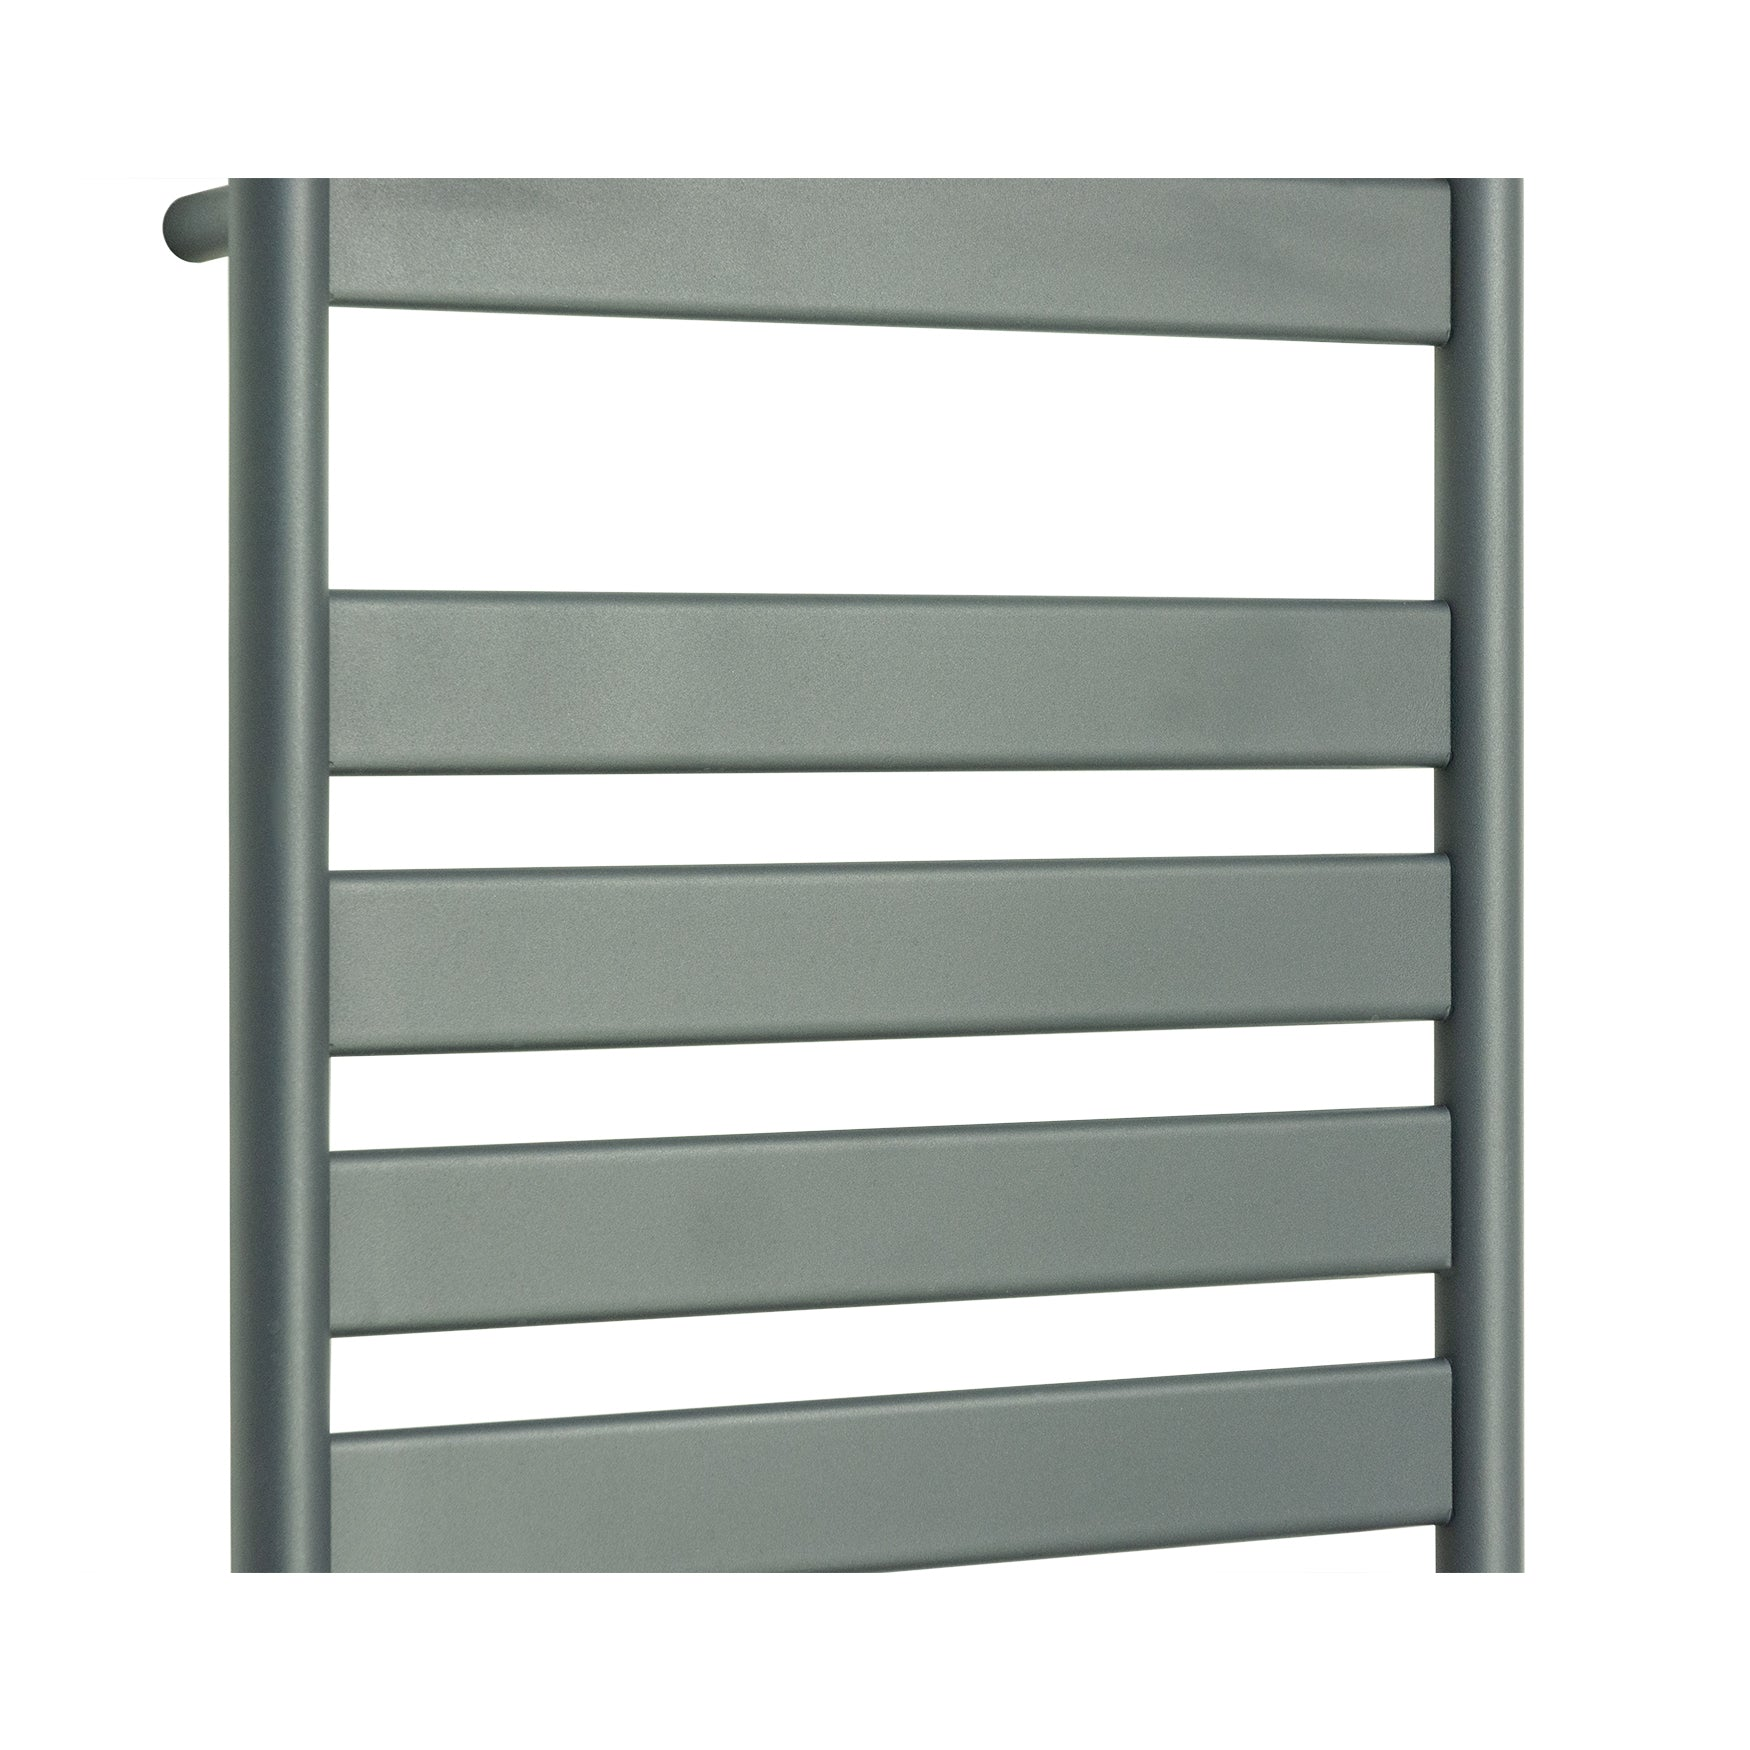 500mm Wide 800mm High Flat Panel Designer Anthracite Heated Towel Rail Radiator HTR